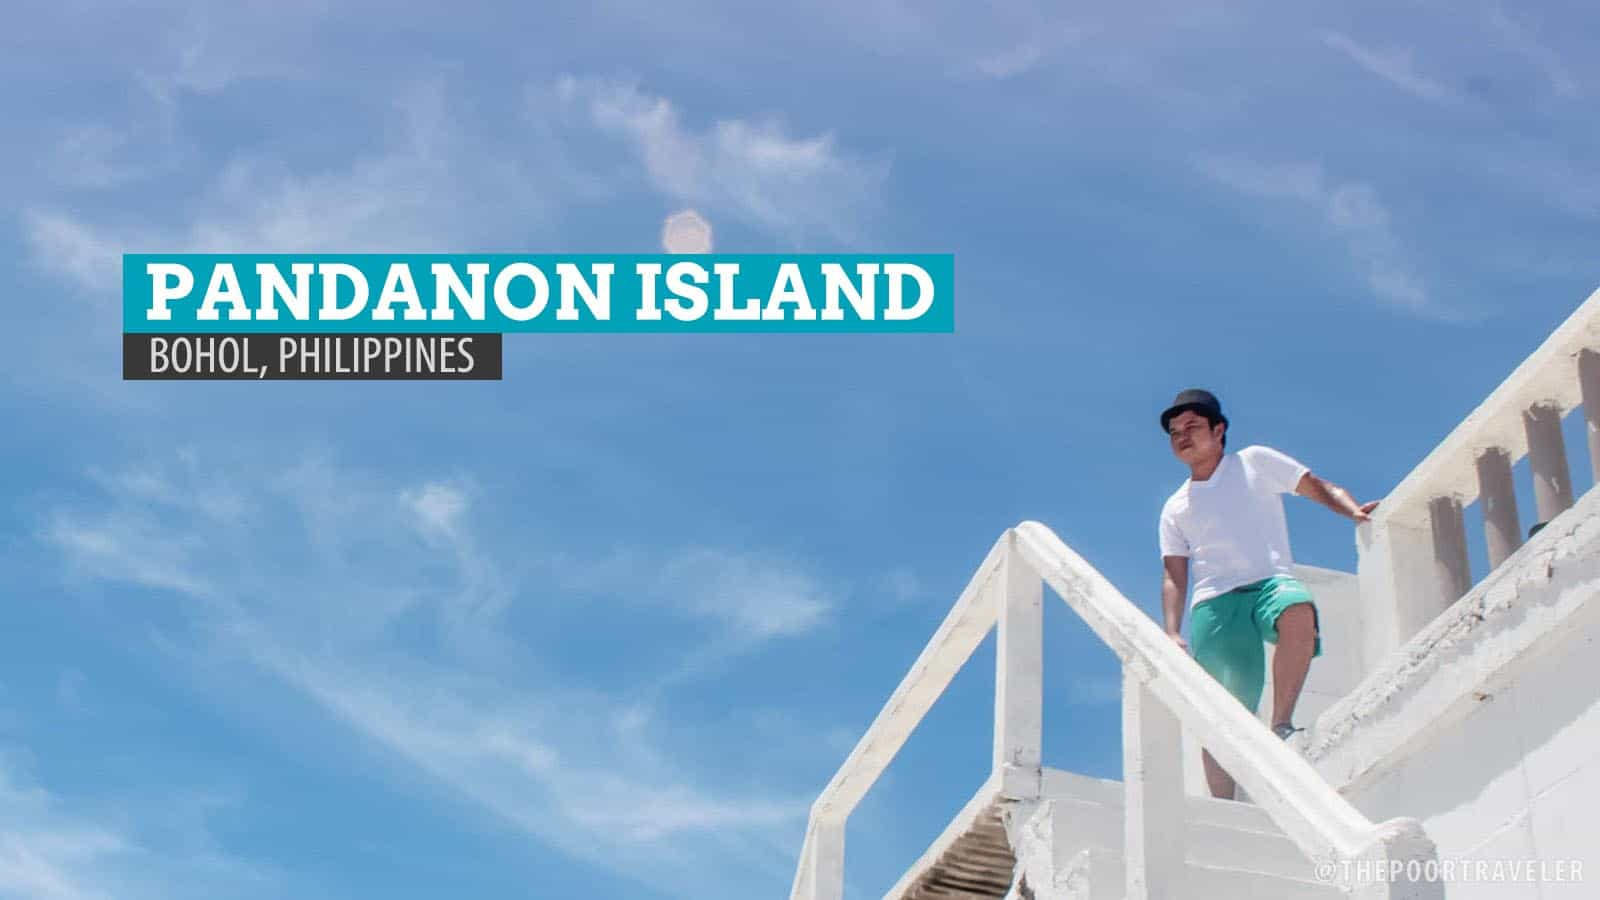 Pandanon Island: A Piece of Bohol, A Trip from Cebu